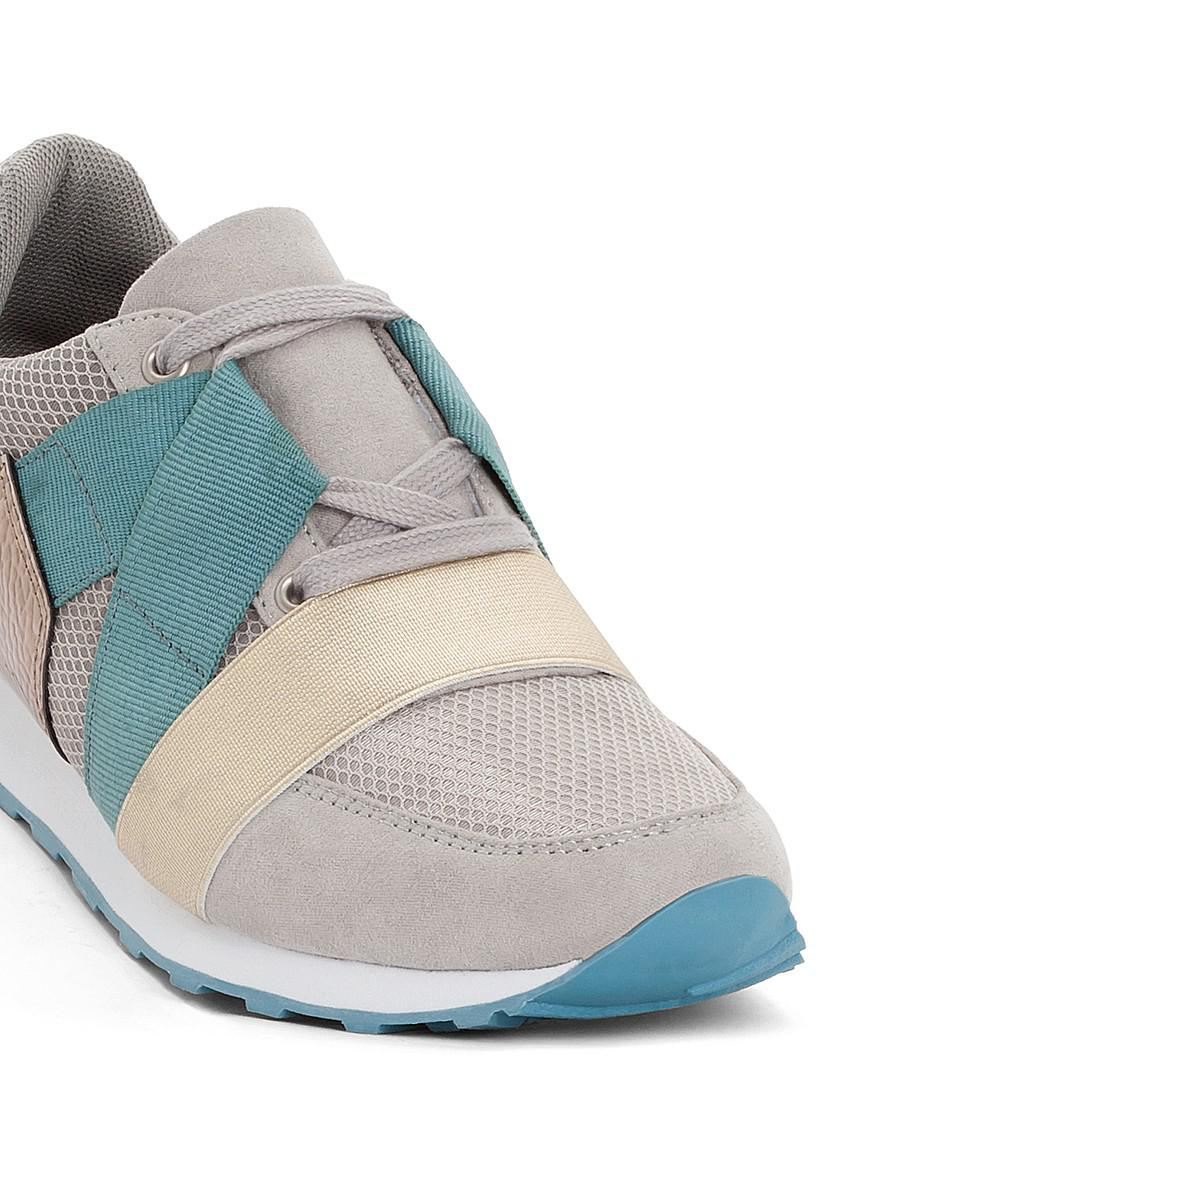 51cd742c9b9e9 Lyst - La Redoute Ultra Light Trainers With Elastic Detail in Gray ...